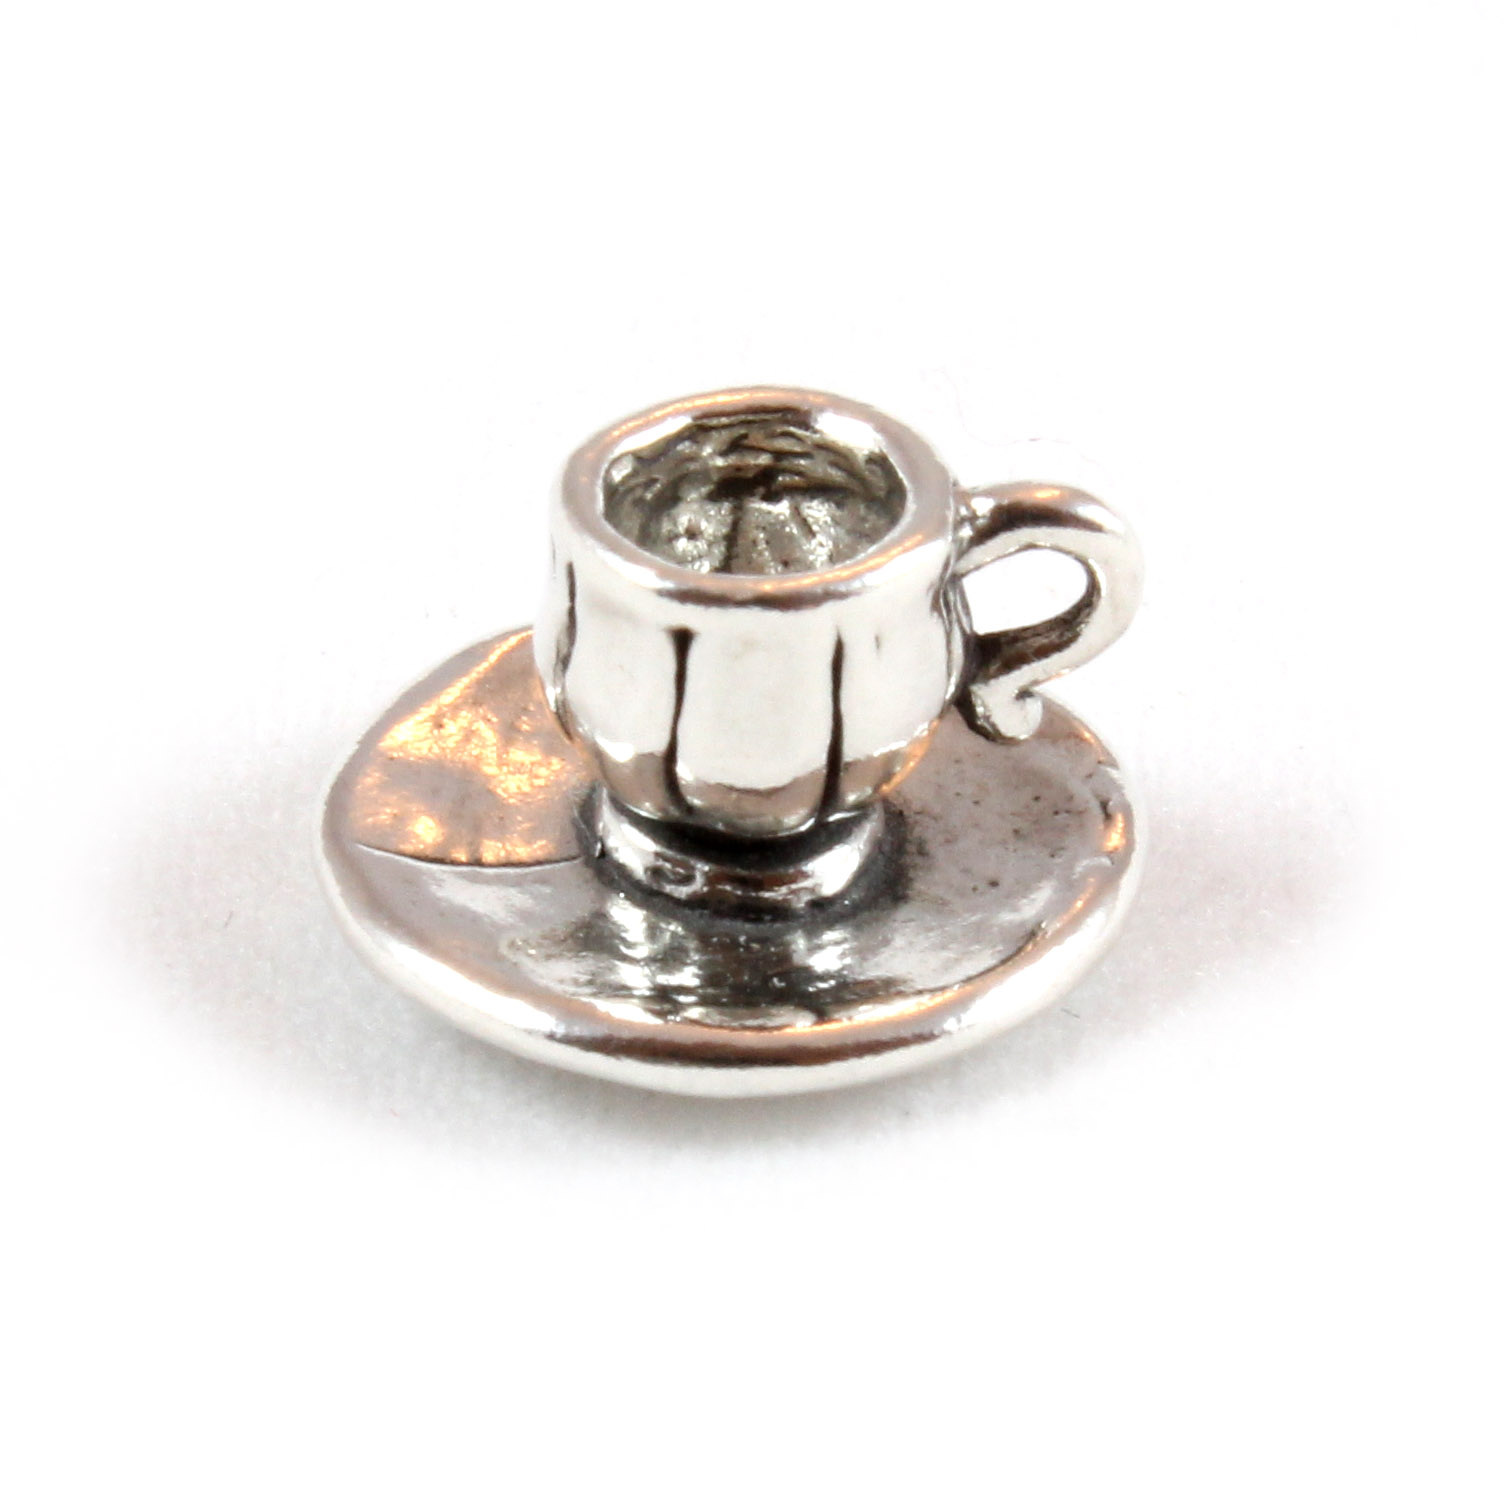 Cup & Saucer Charm 3D Sterling Silver Charms Coffee Tea | eBay - photo#6